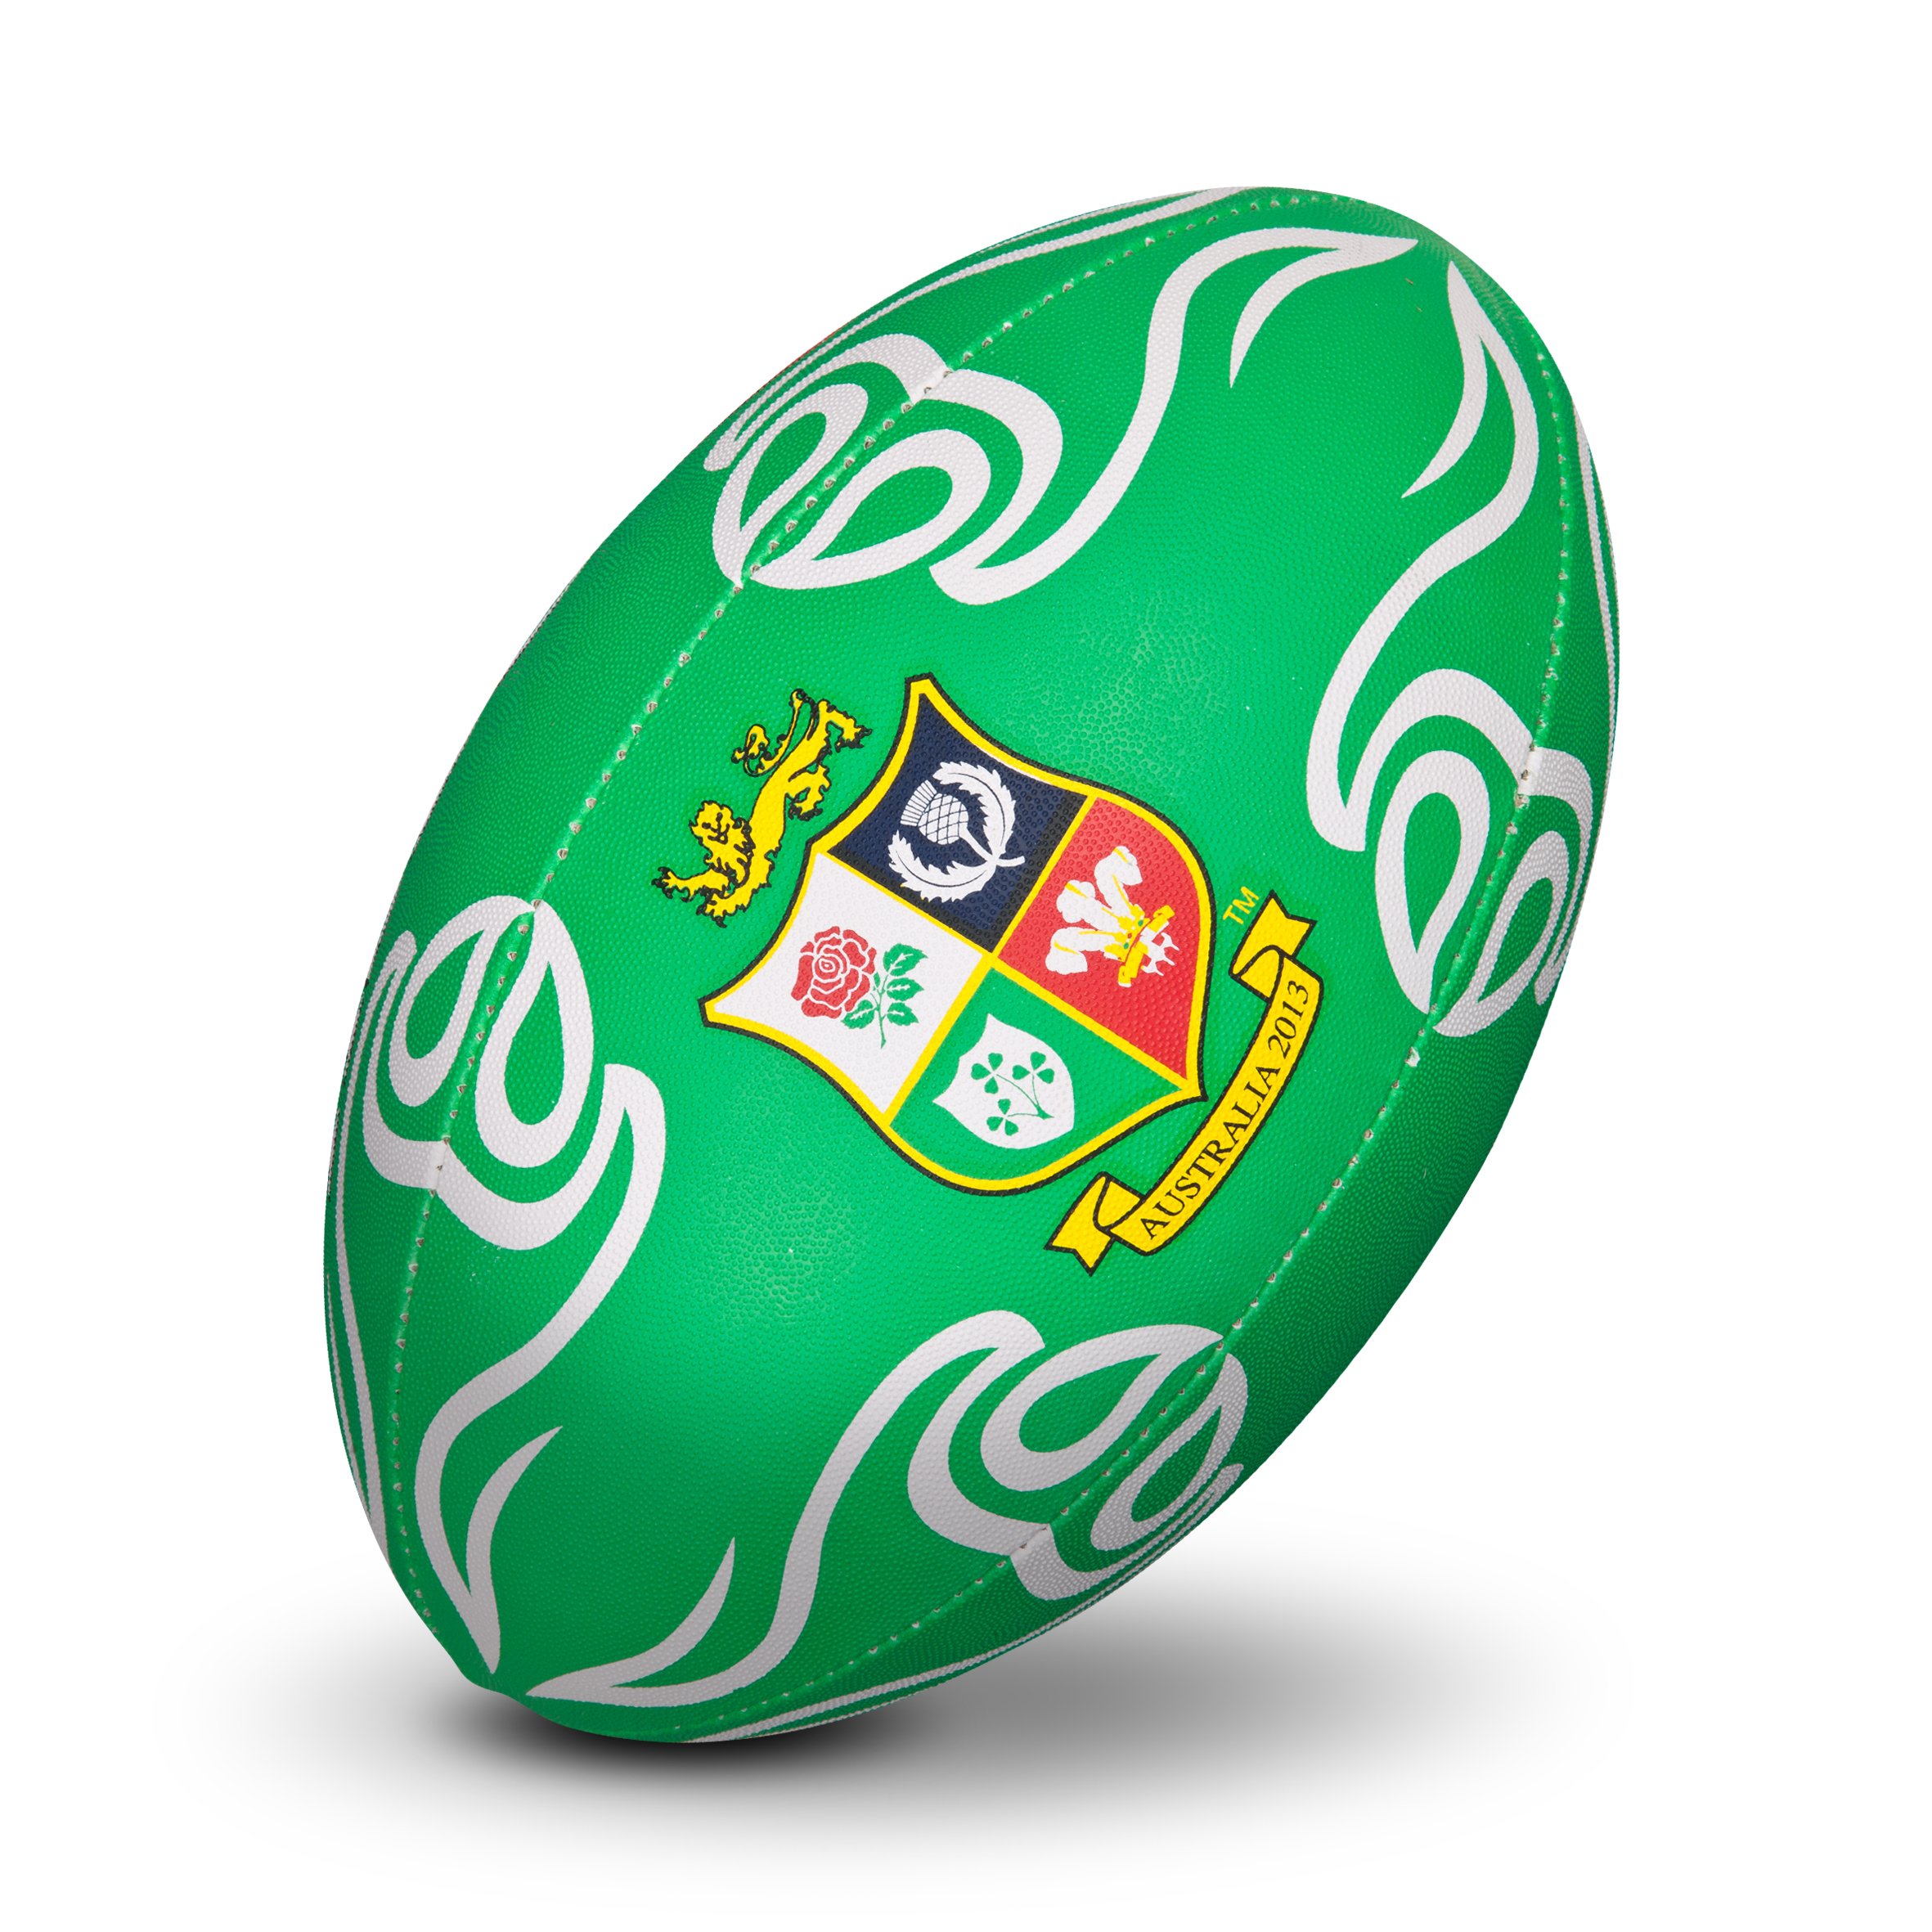 British & Irish Lions Supporters Rugby Ball - Green/White